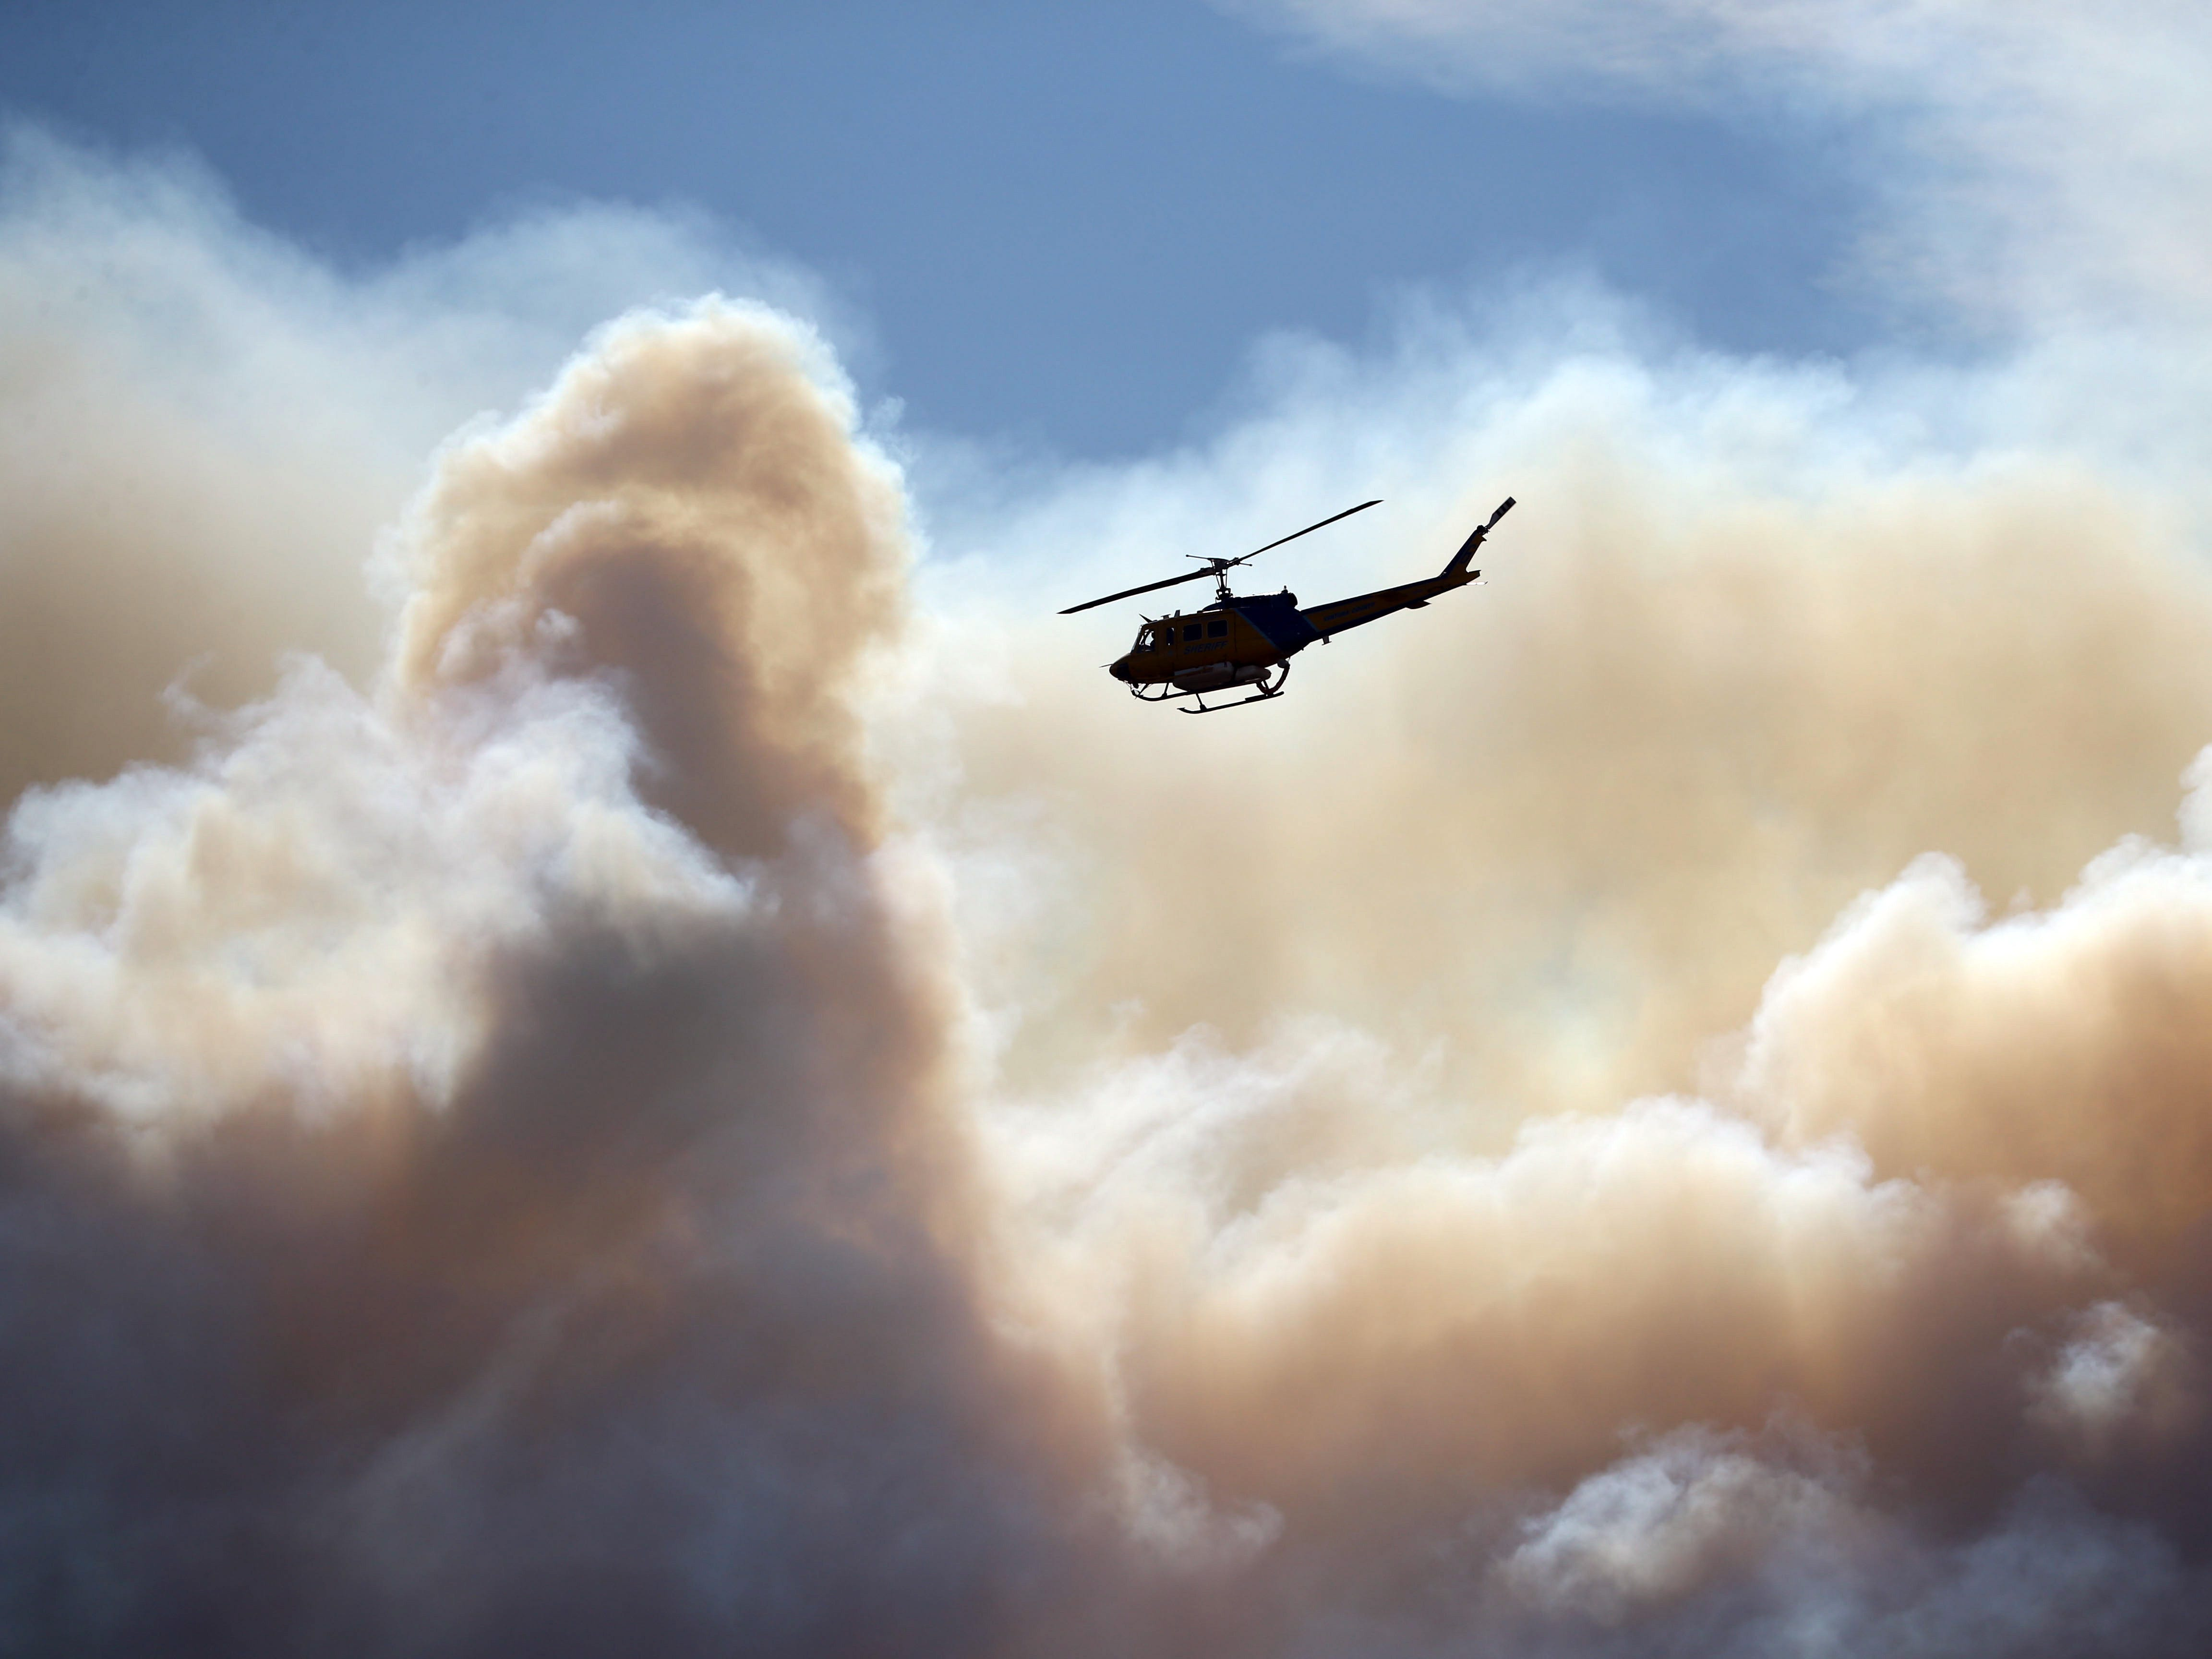 A helicopter flies near the Woolsey Fire burning in the Santa Monica Mountains National Recreation Area in Newbury Park, Calif. on Nov. 13, 2018.